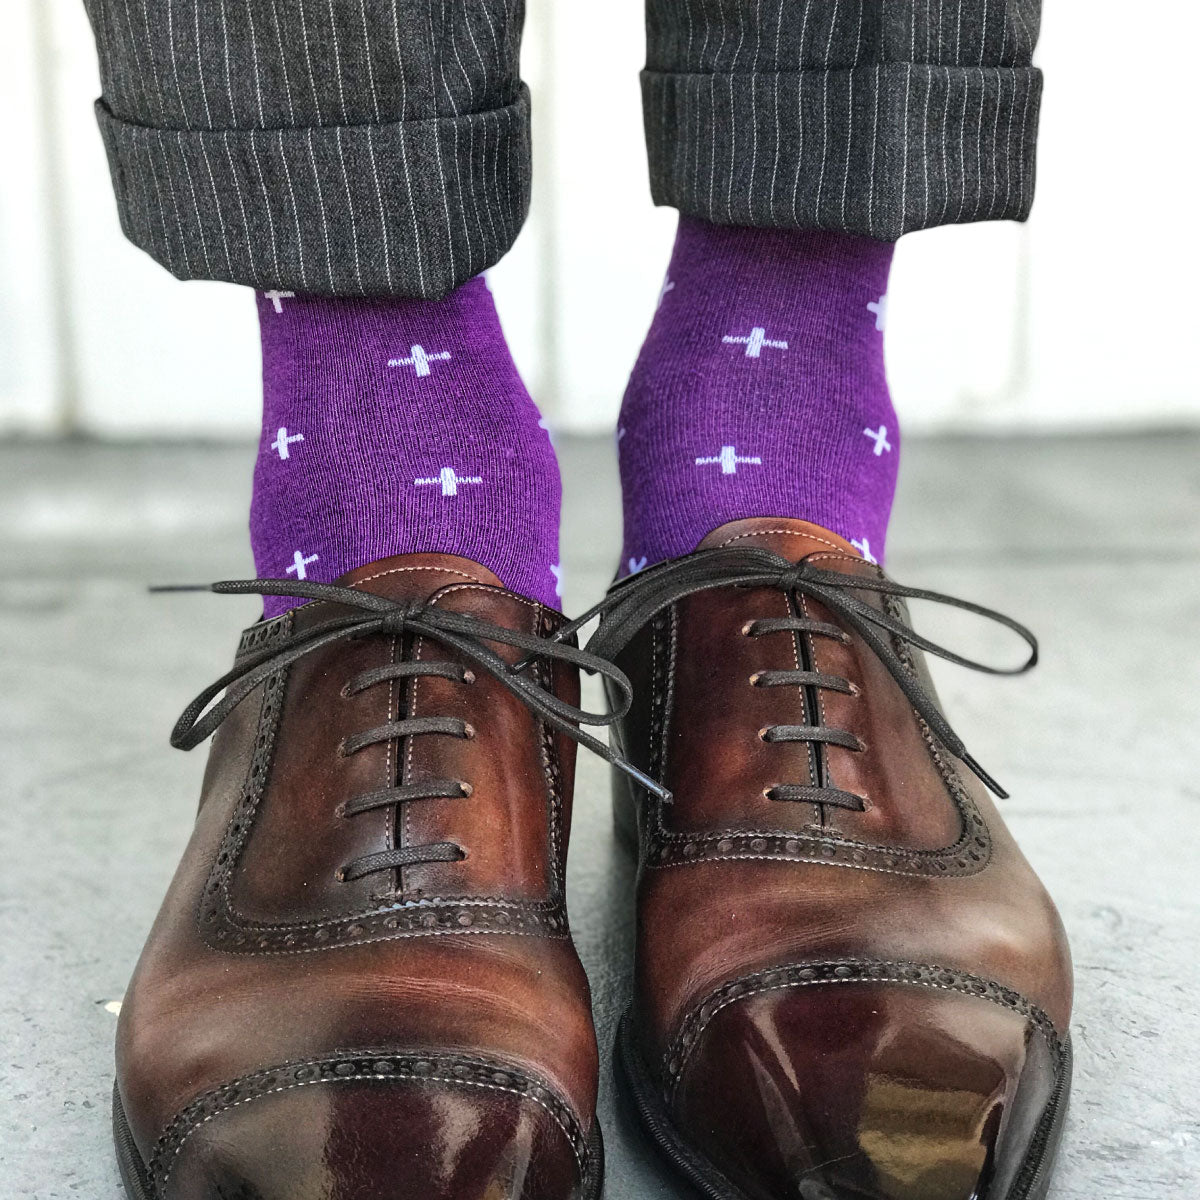 Guy wearing purple socks with grey slacks and brown shoes